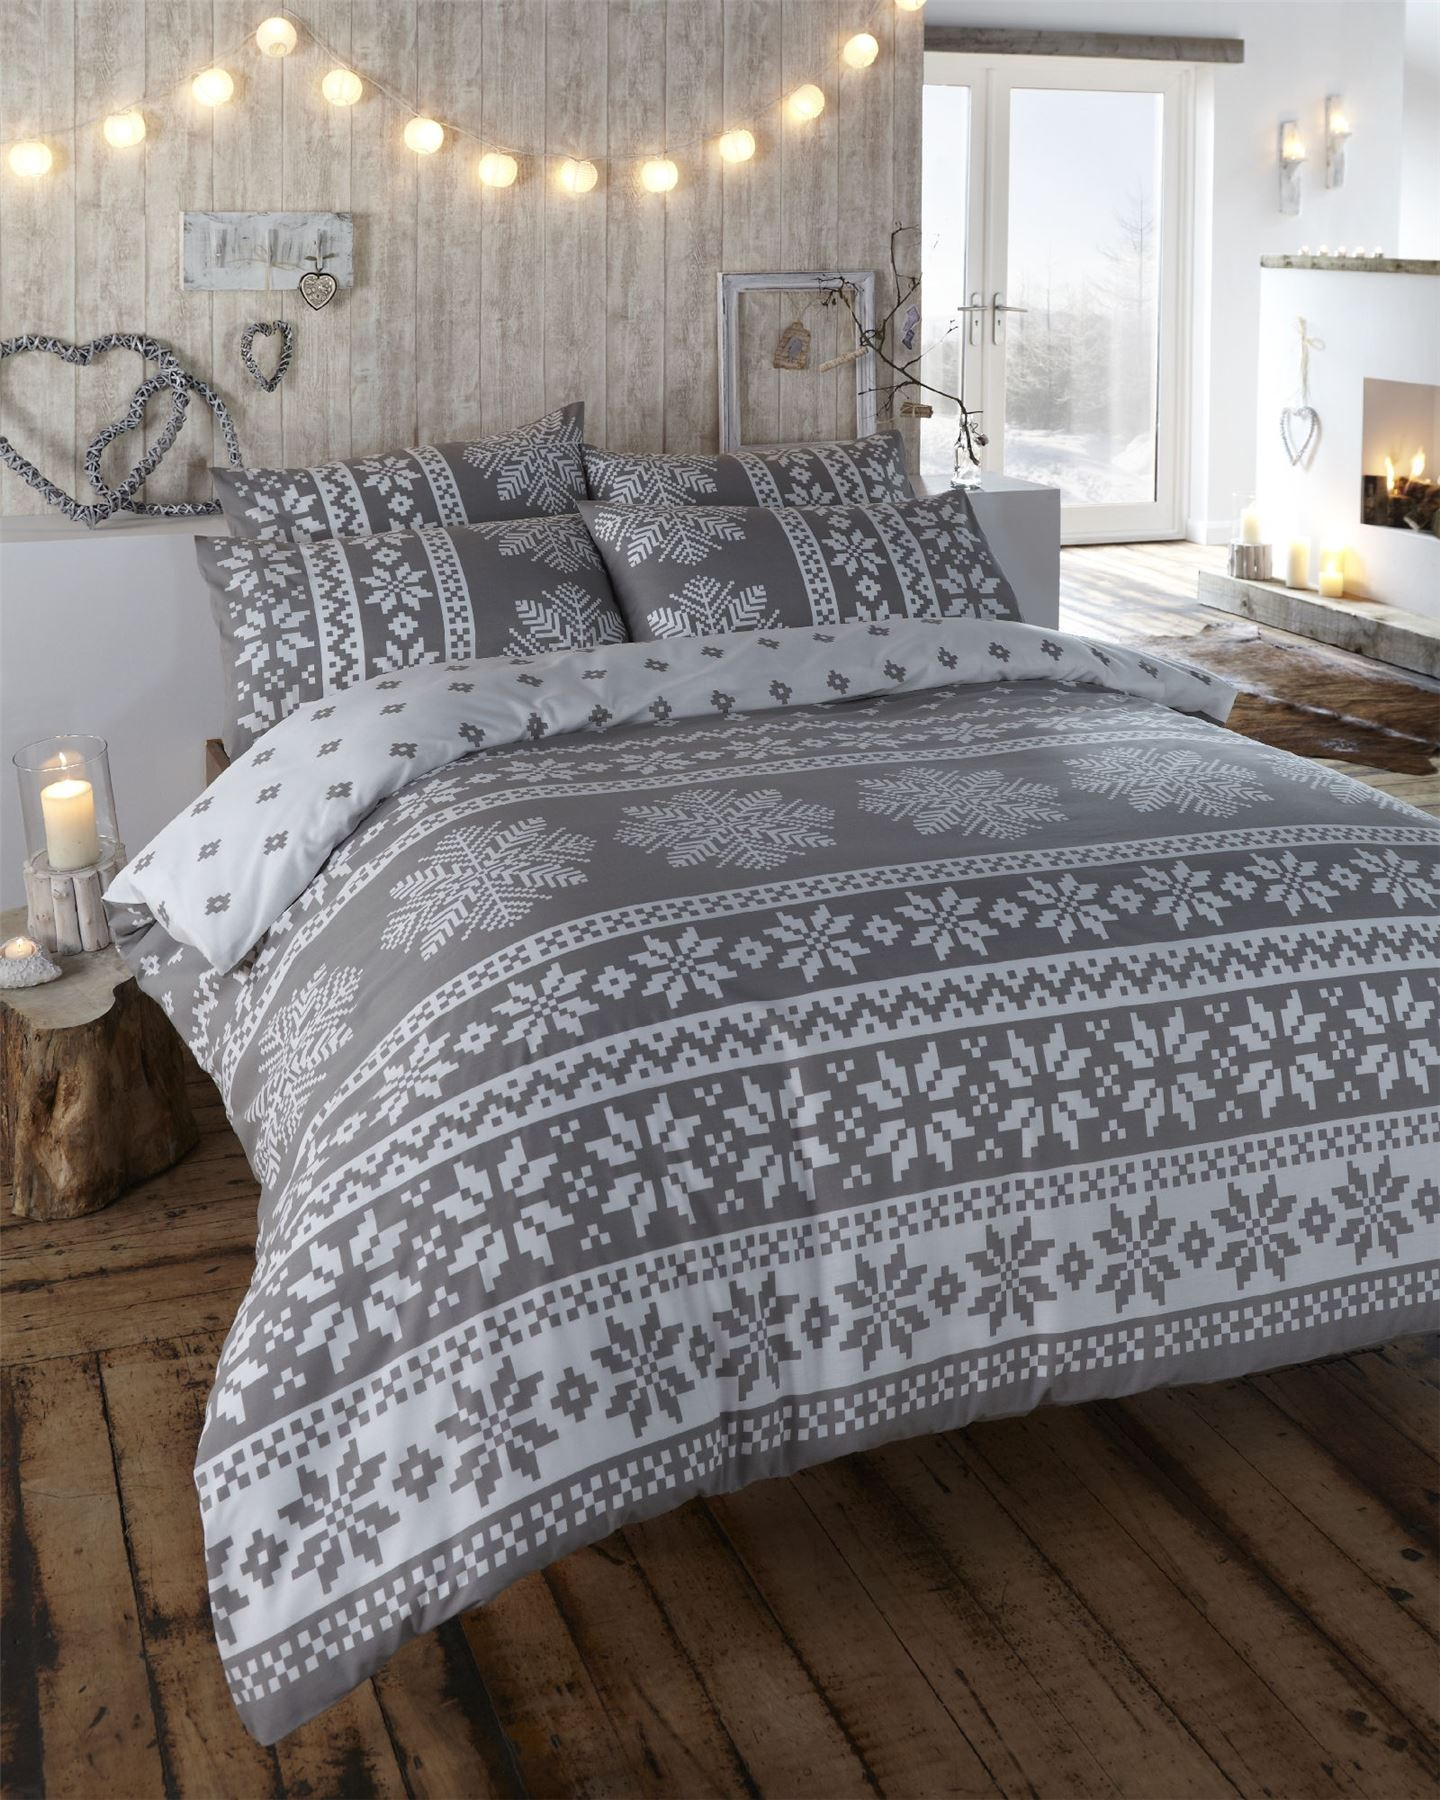 Nordic fair isle scandinavian winter duvet quilt cover bedding set ebay Swedish home furniture amazon